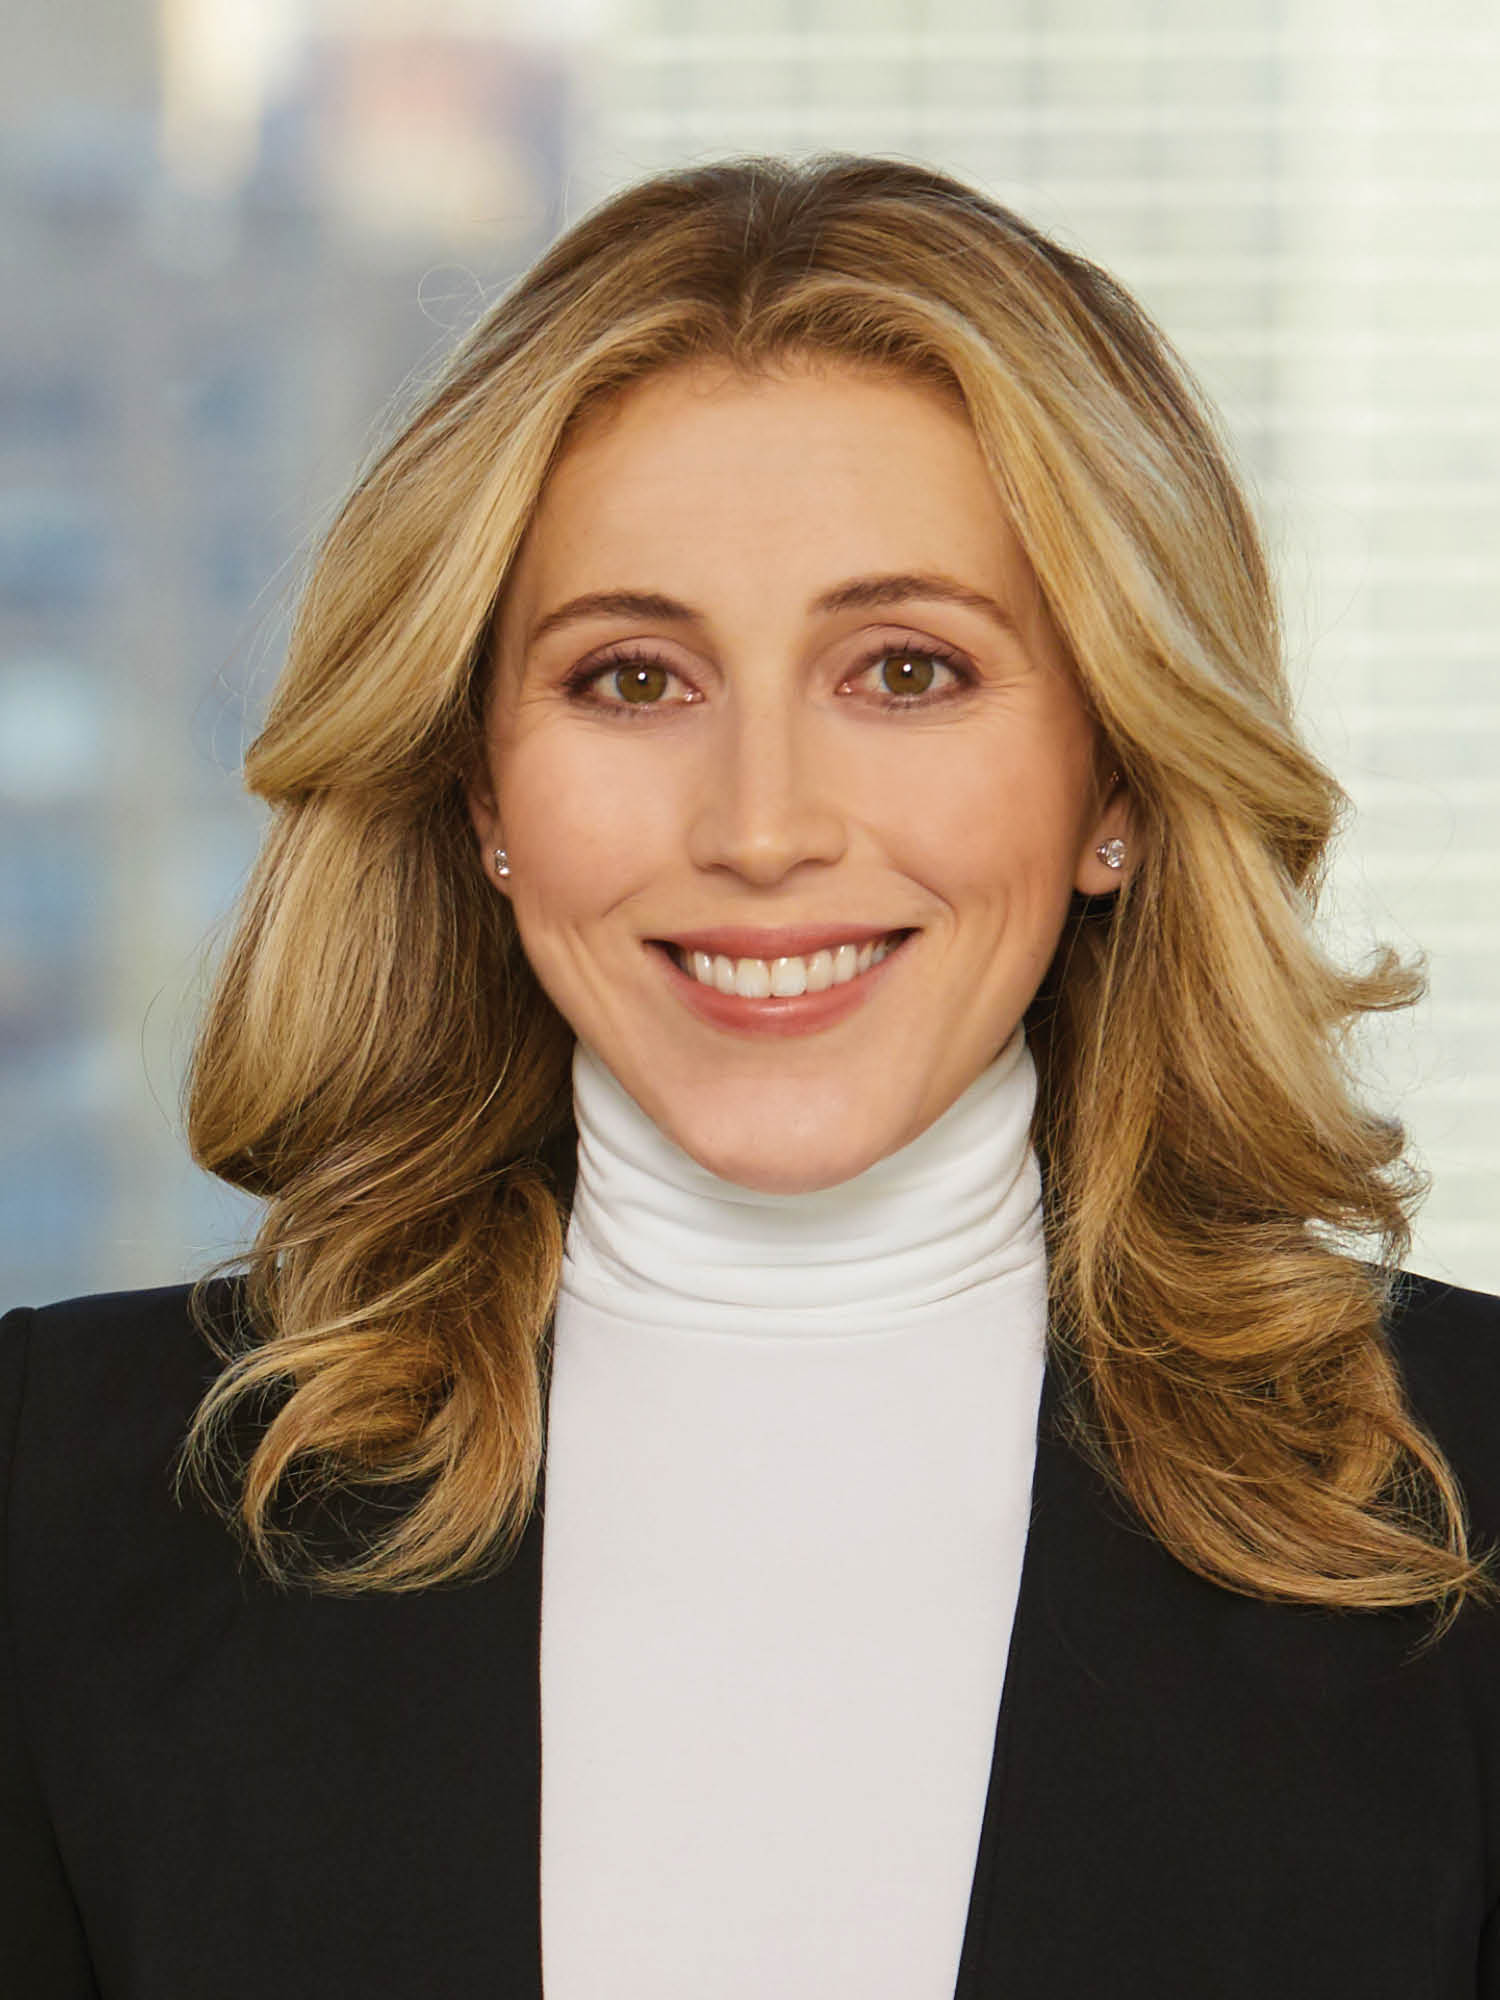 Christine Calvo, a top realtor in New York City for Corcoran, a real estate firm in SoHo.